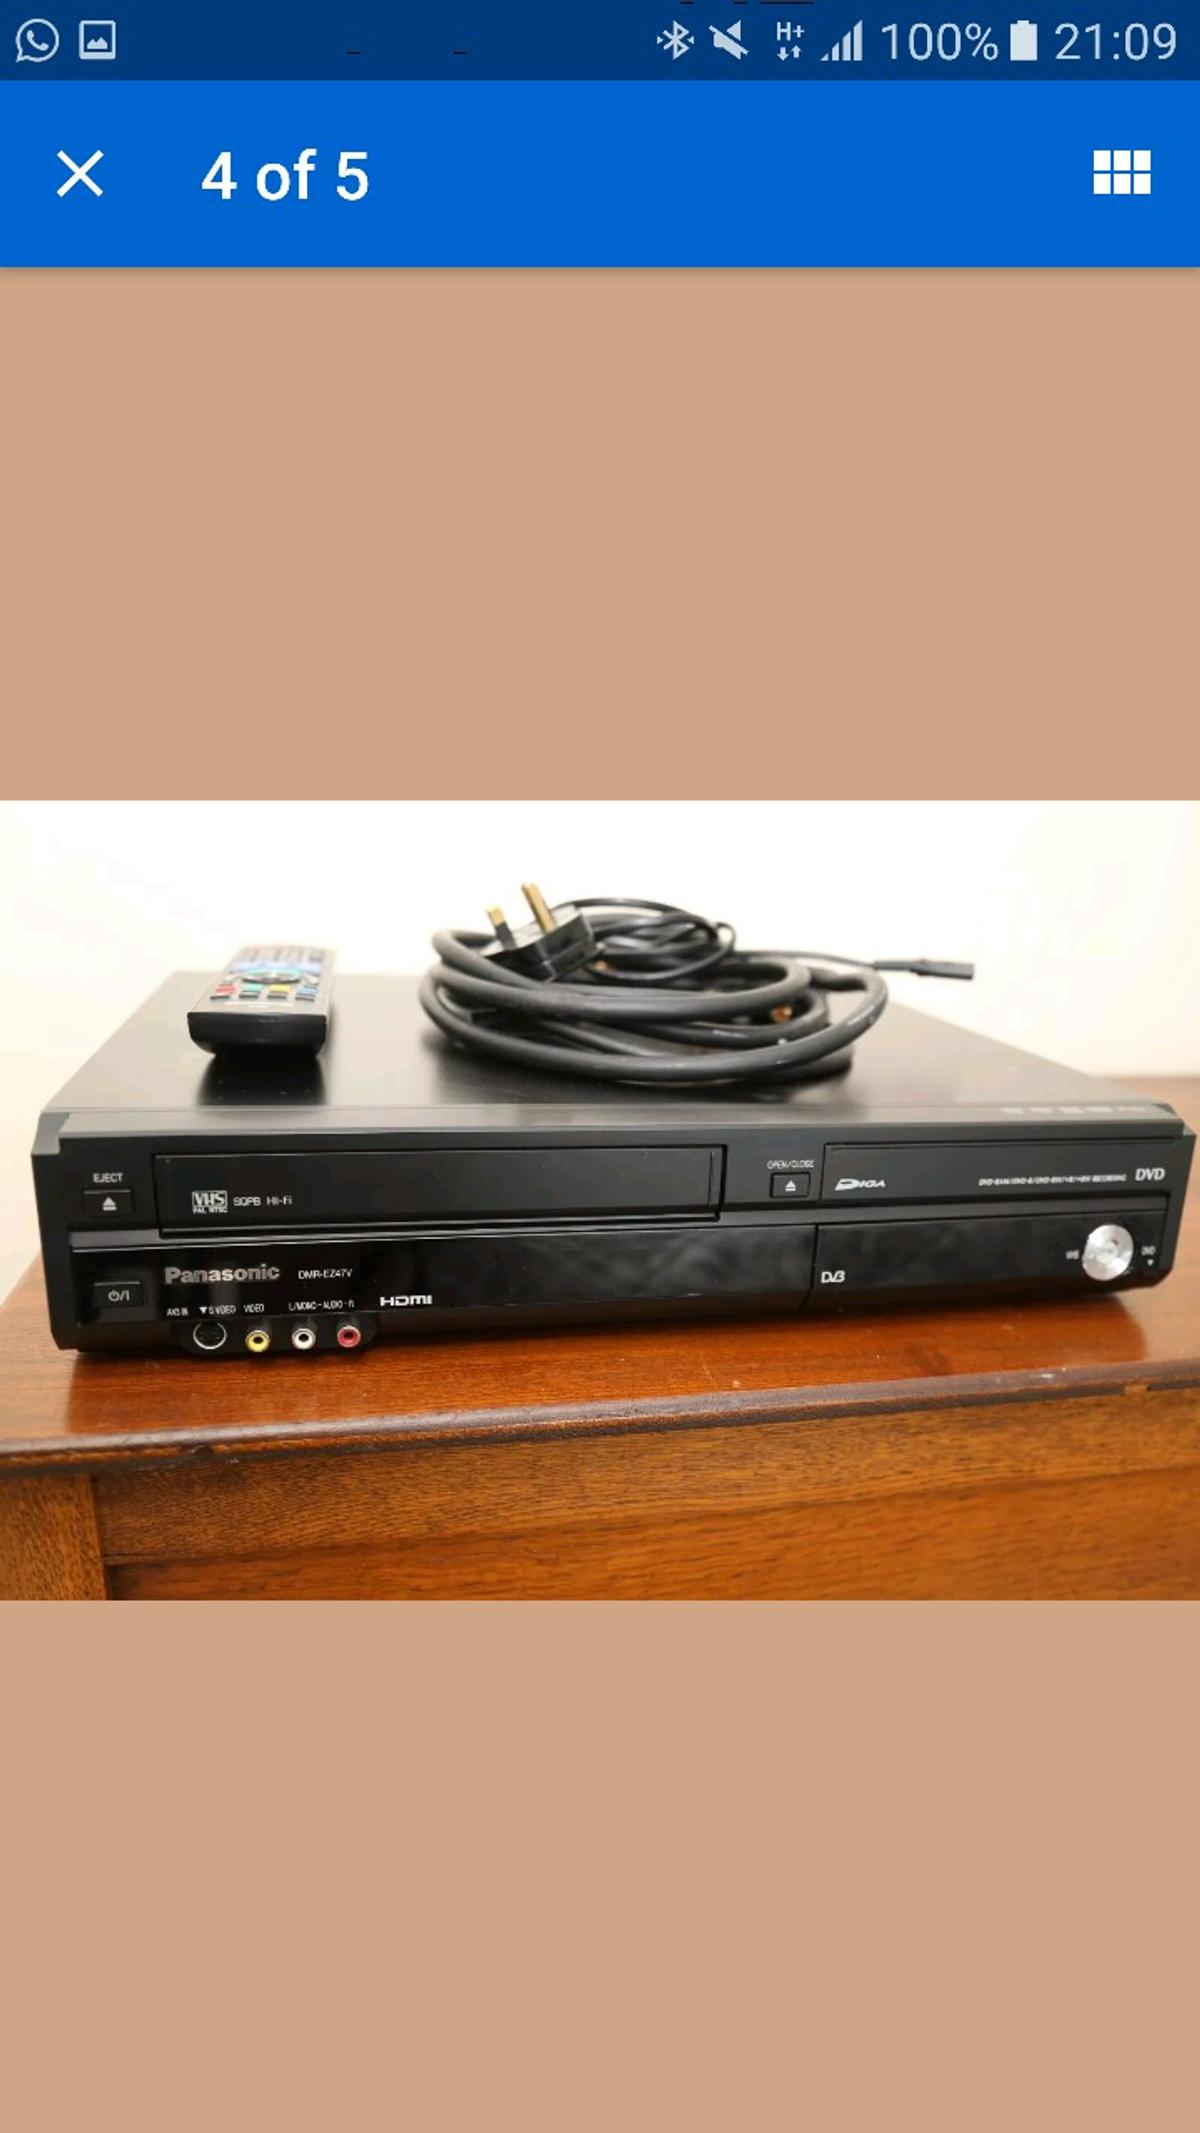 What Is The Best Way To Connect Dmrez48v Recorder To Cable